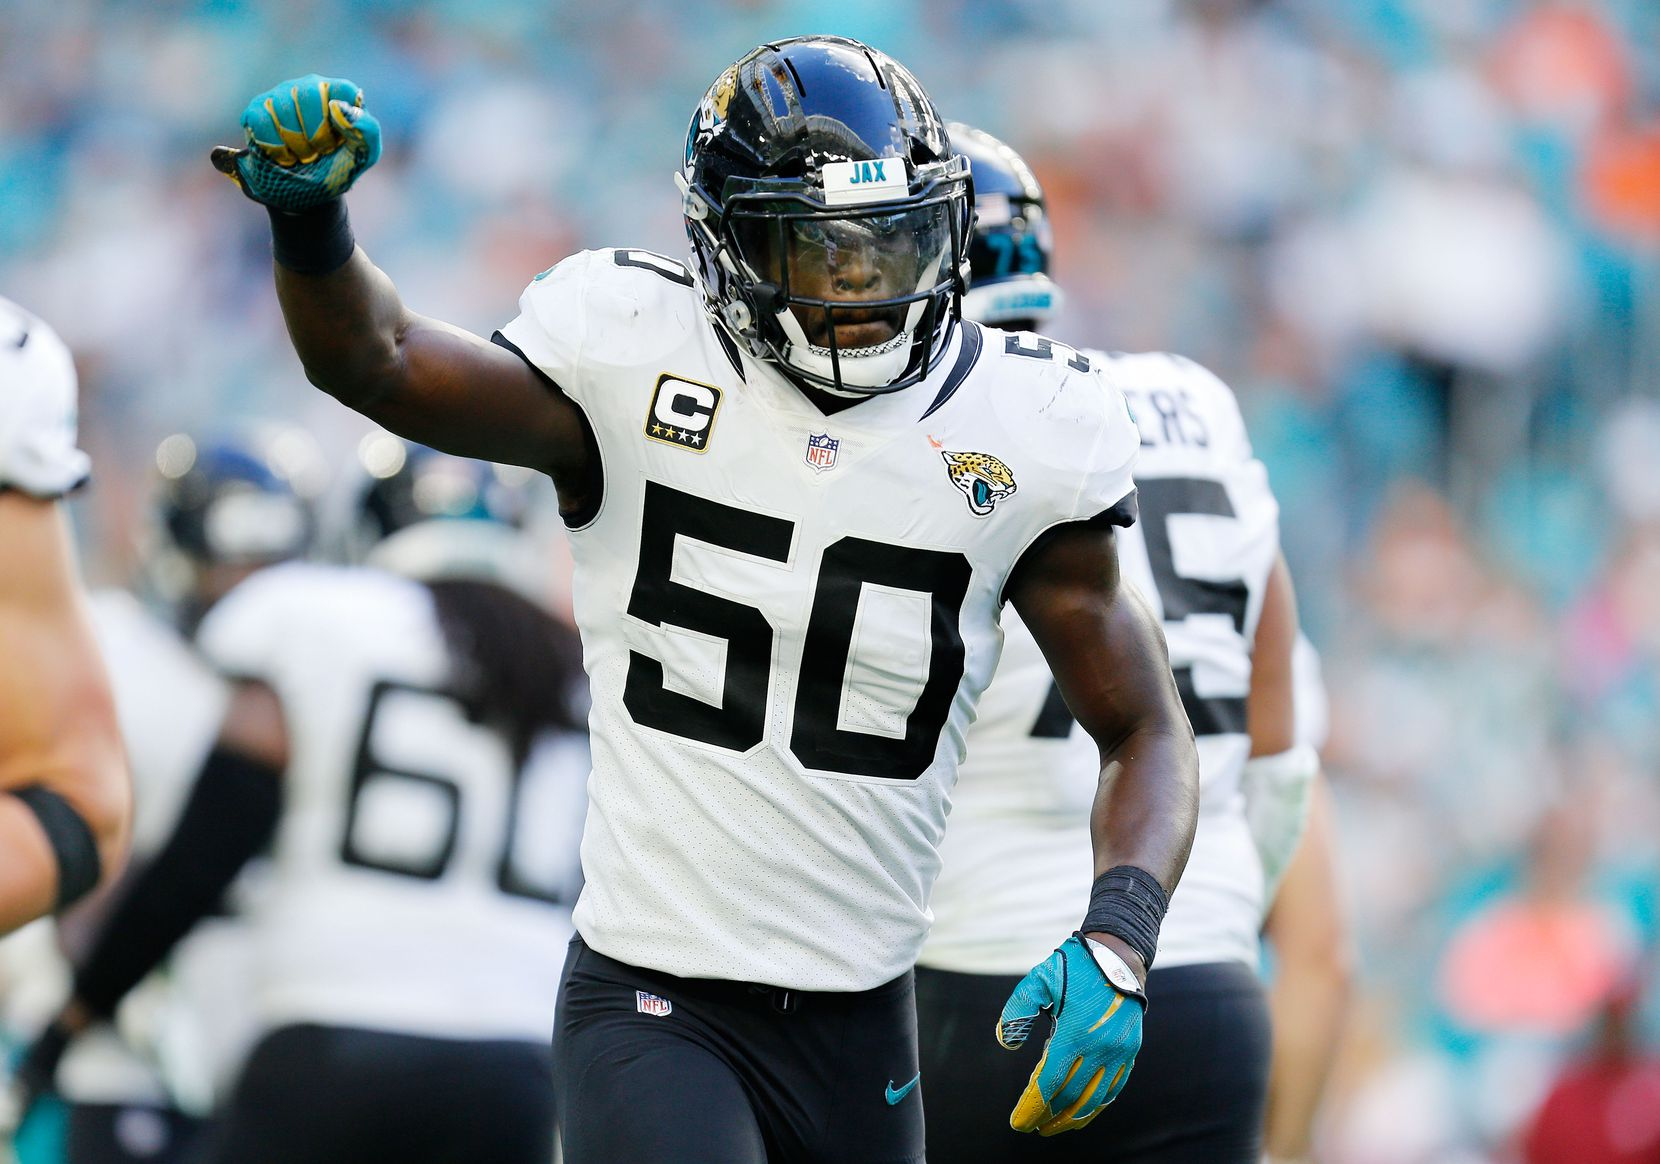 MIAMI, FLORIDA - DECEMBER 23:  Telvin Smith #50 of the Jacksonville Jaguars celebrates after intercepting a pass for a touchdown in the fourth quarter against the Miami Dolphins at Hard Rock Stadium on December 23, 2018 in Miami, Florida. (Photo by Michael Reaves/Getty Images)